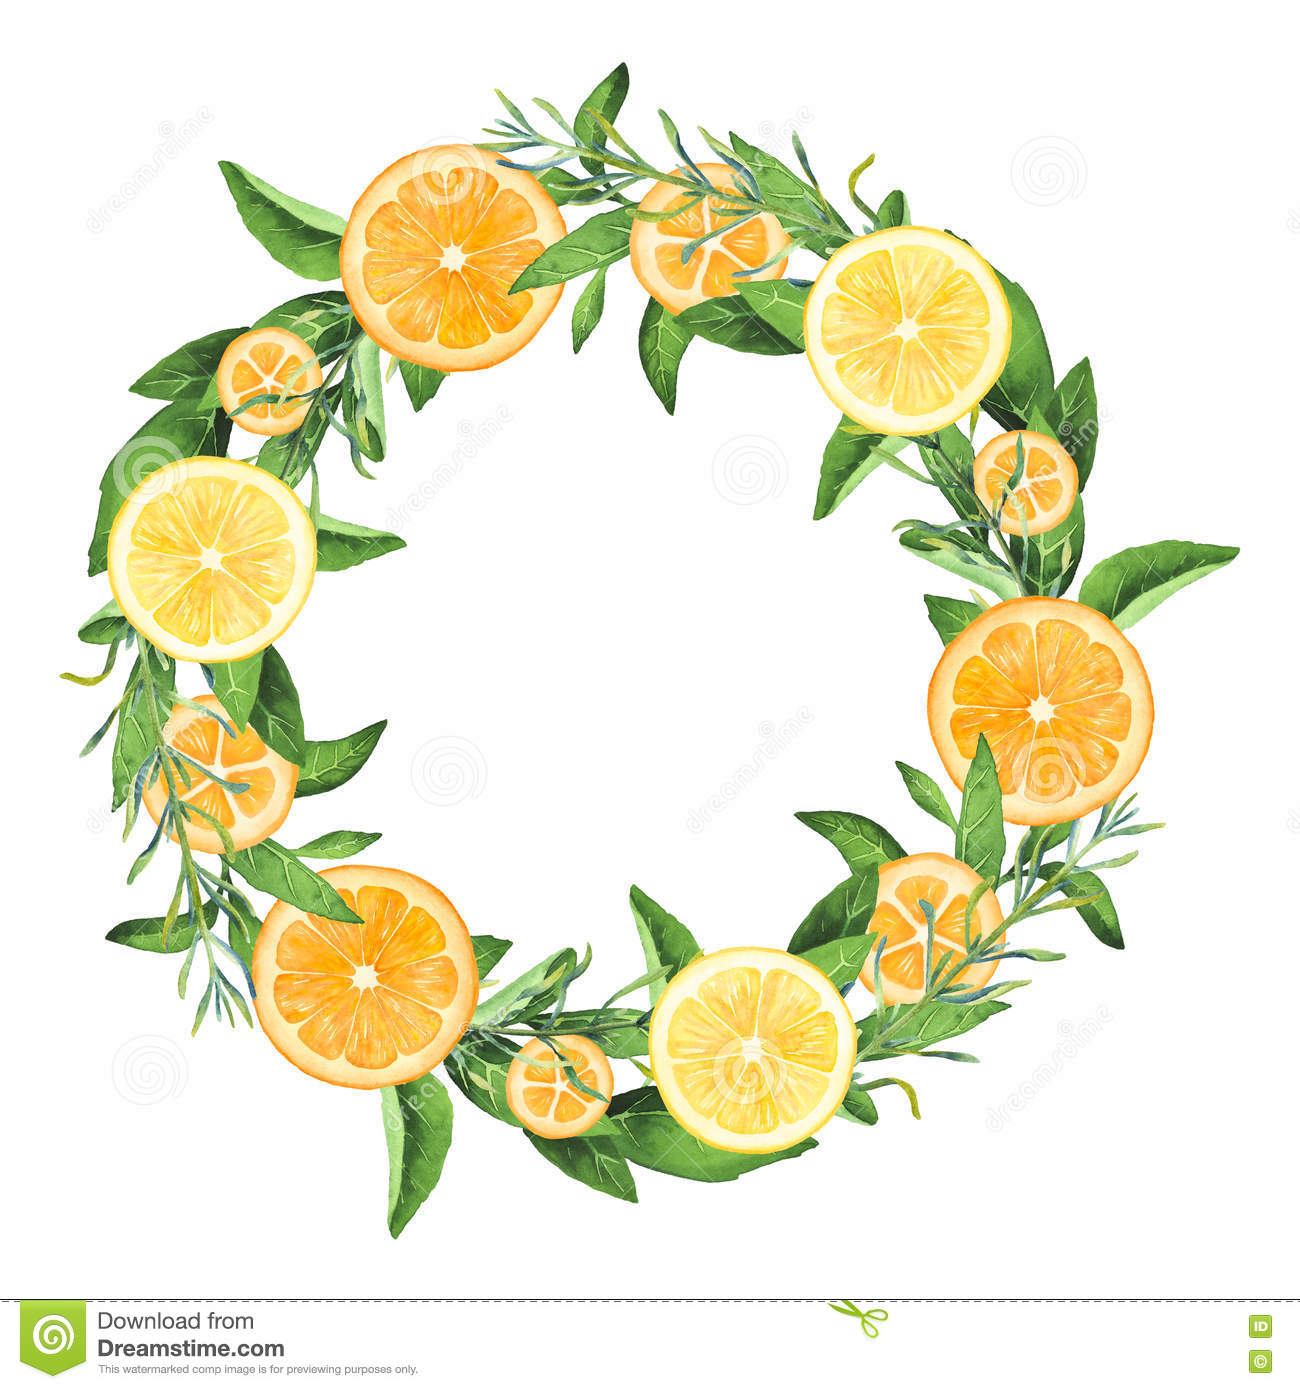 Hand Painted Watercolor Lemons And Oranges Wreath Stock Illustration Illustration Of